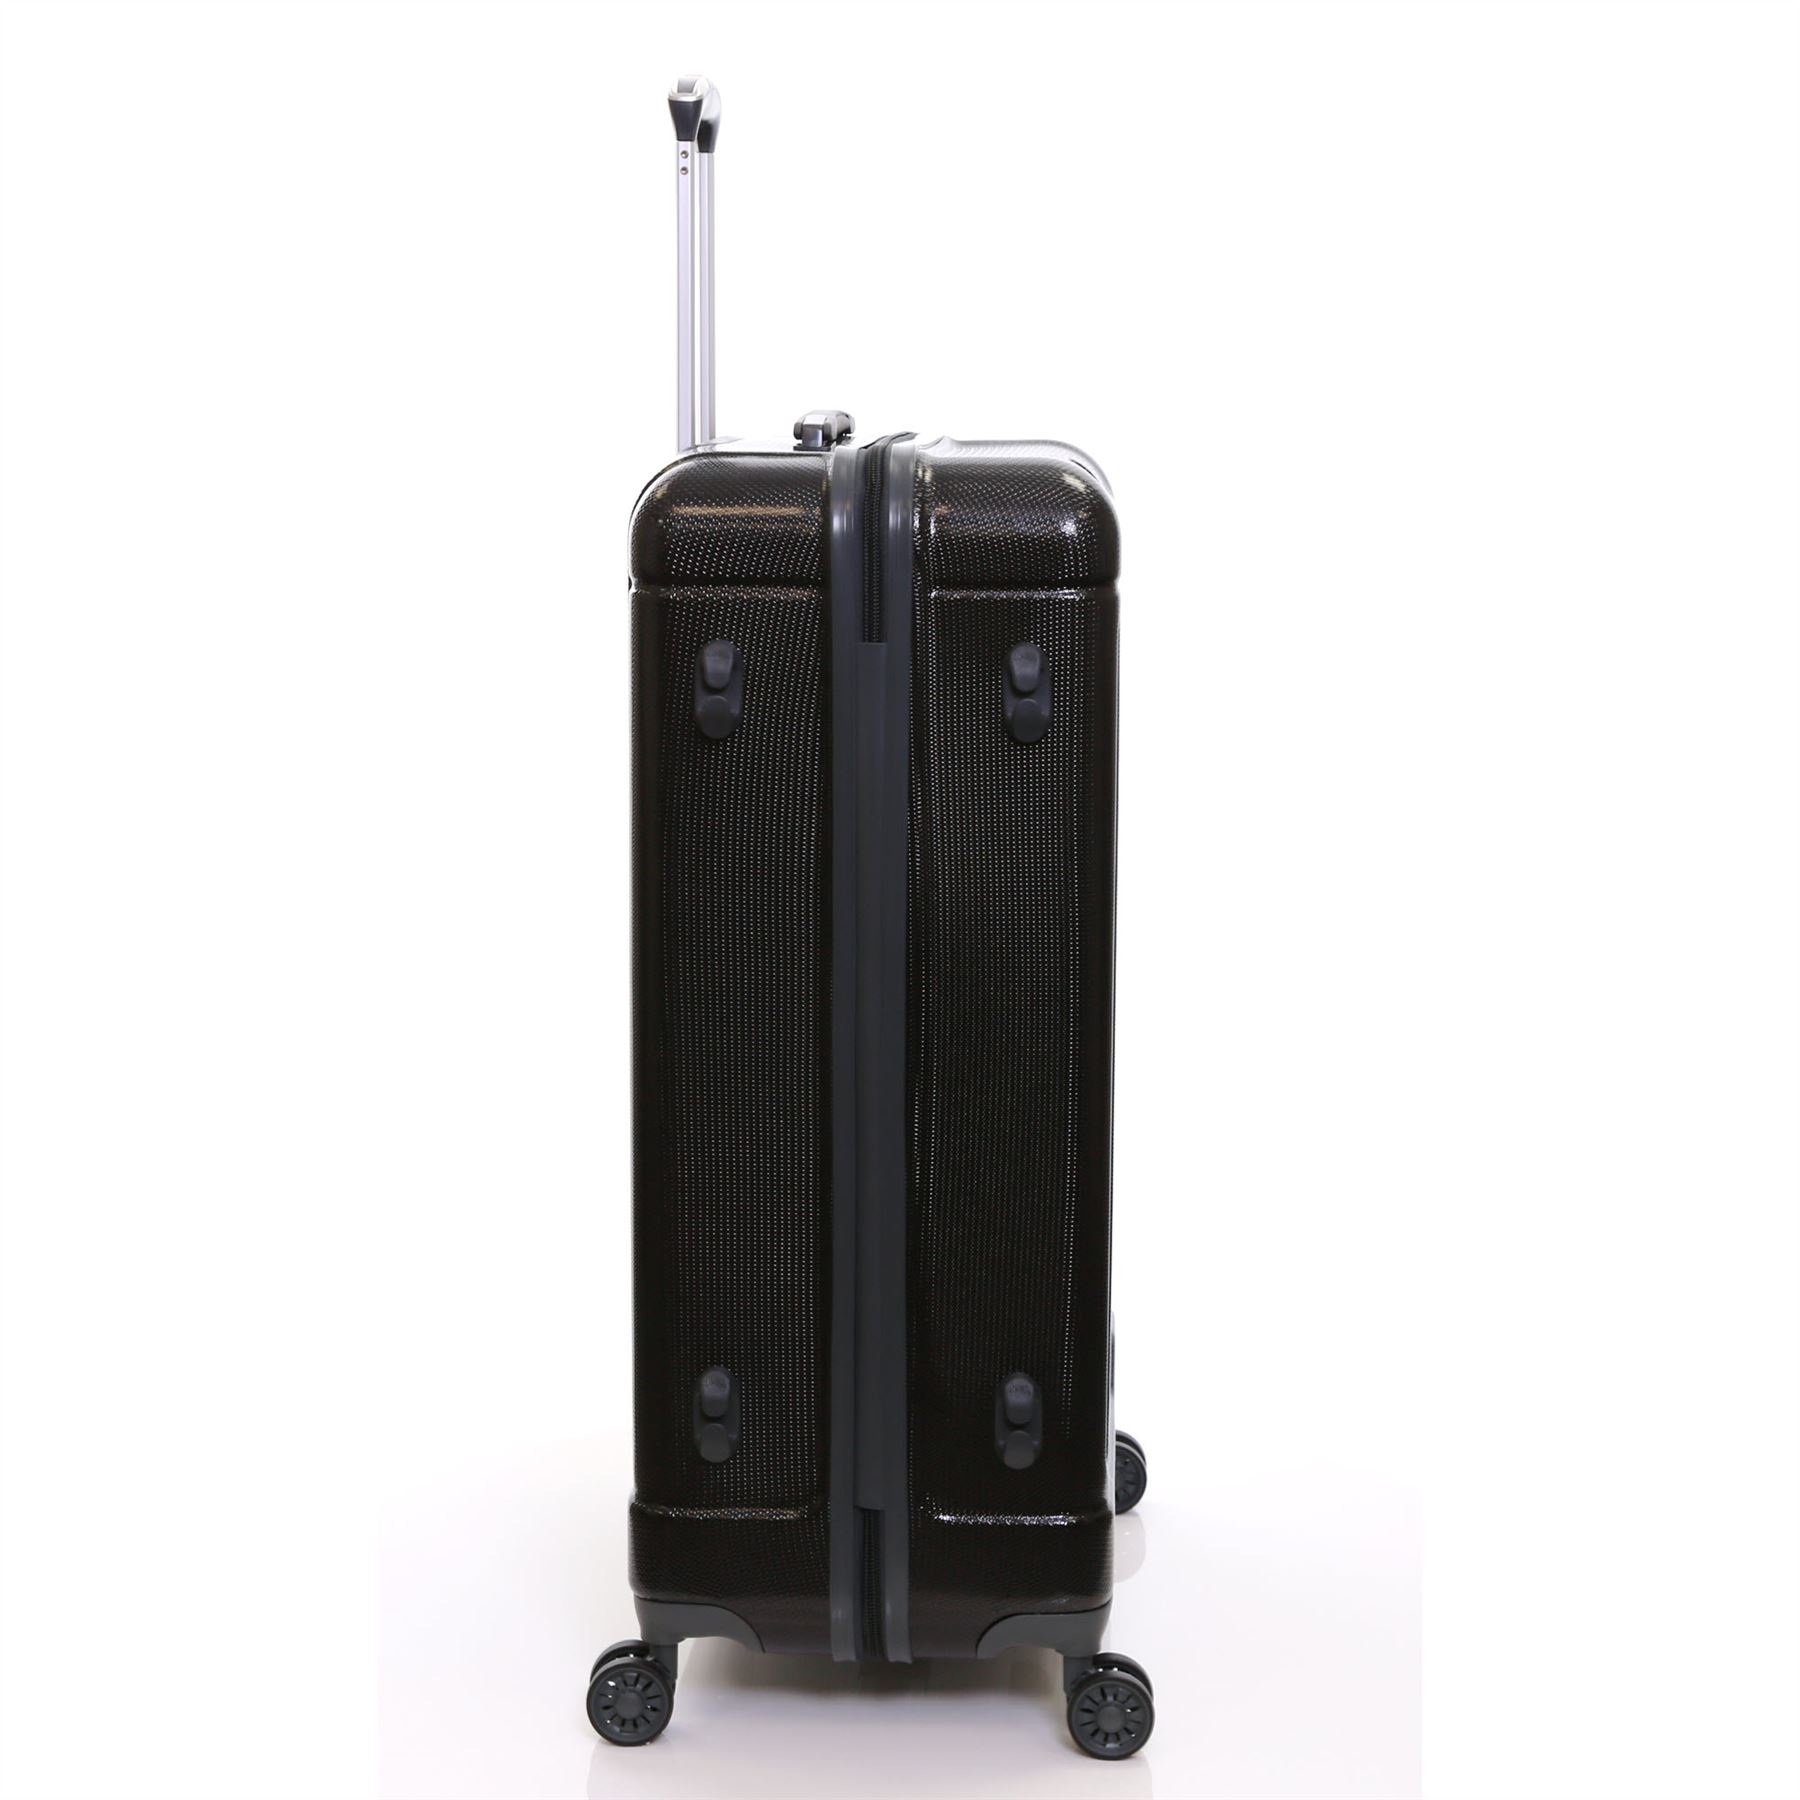 79f70228062 Jeep XXL Extra Large 80 cm Hard Shell Spinner Trolley Luggage ...